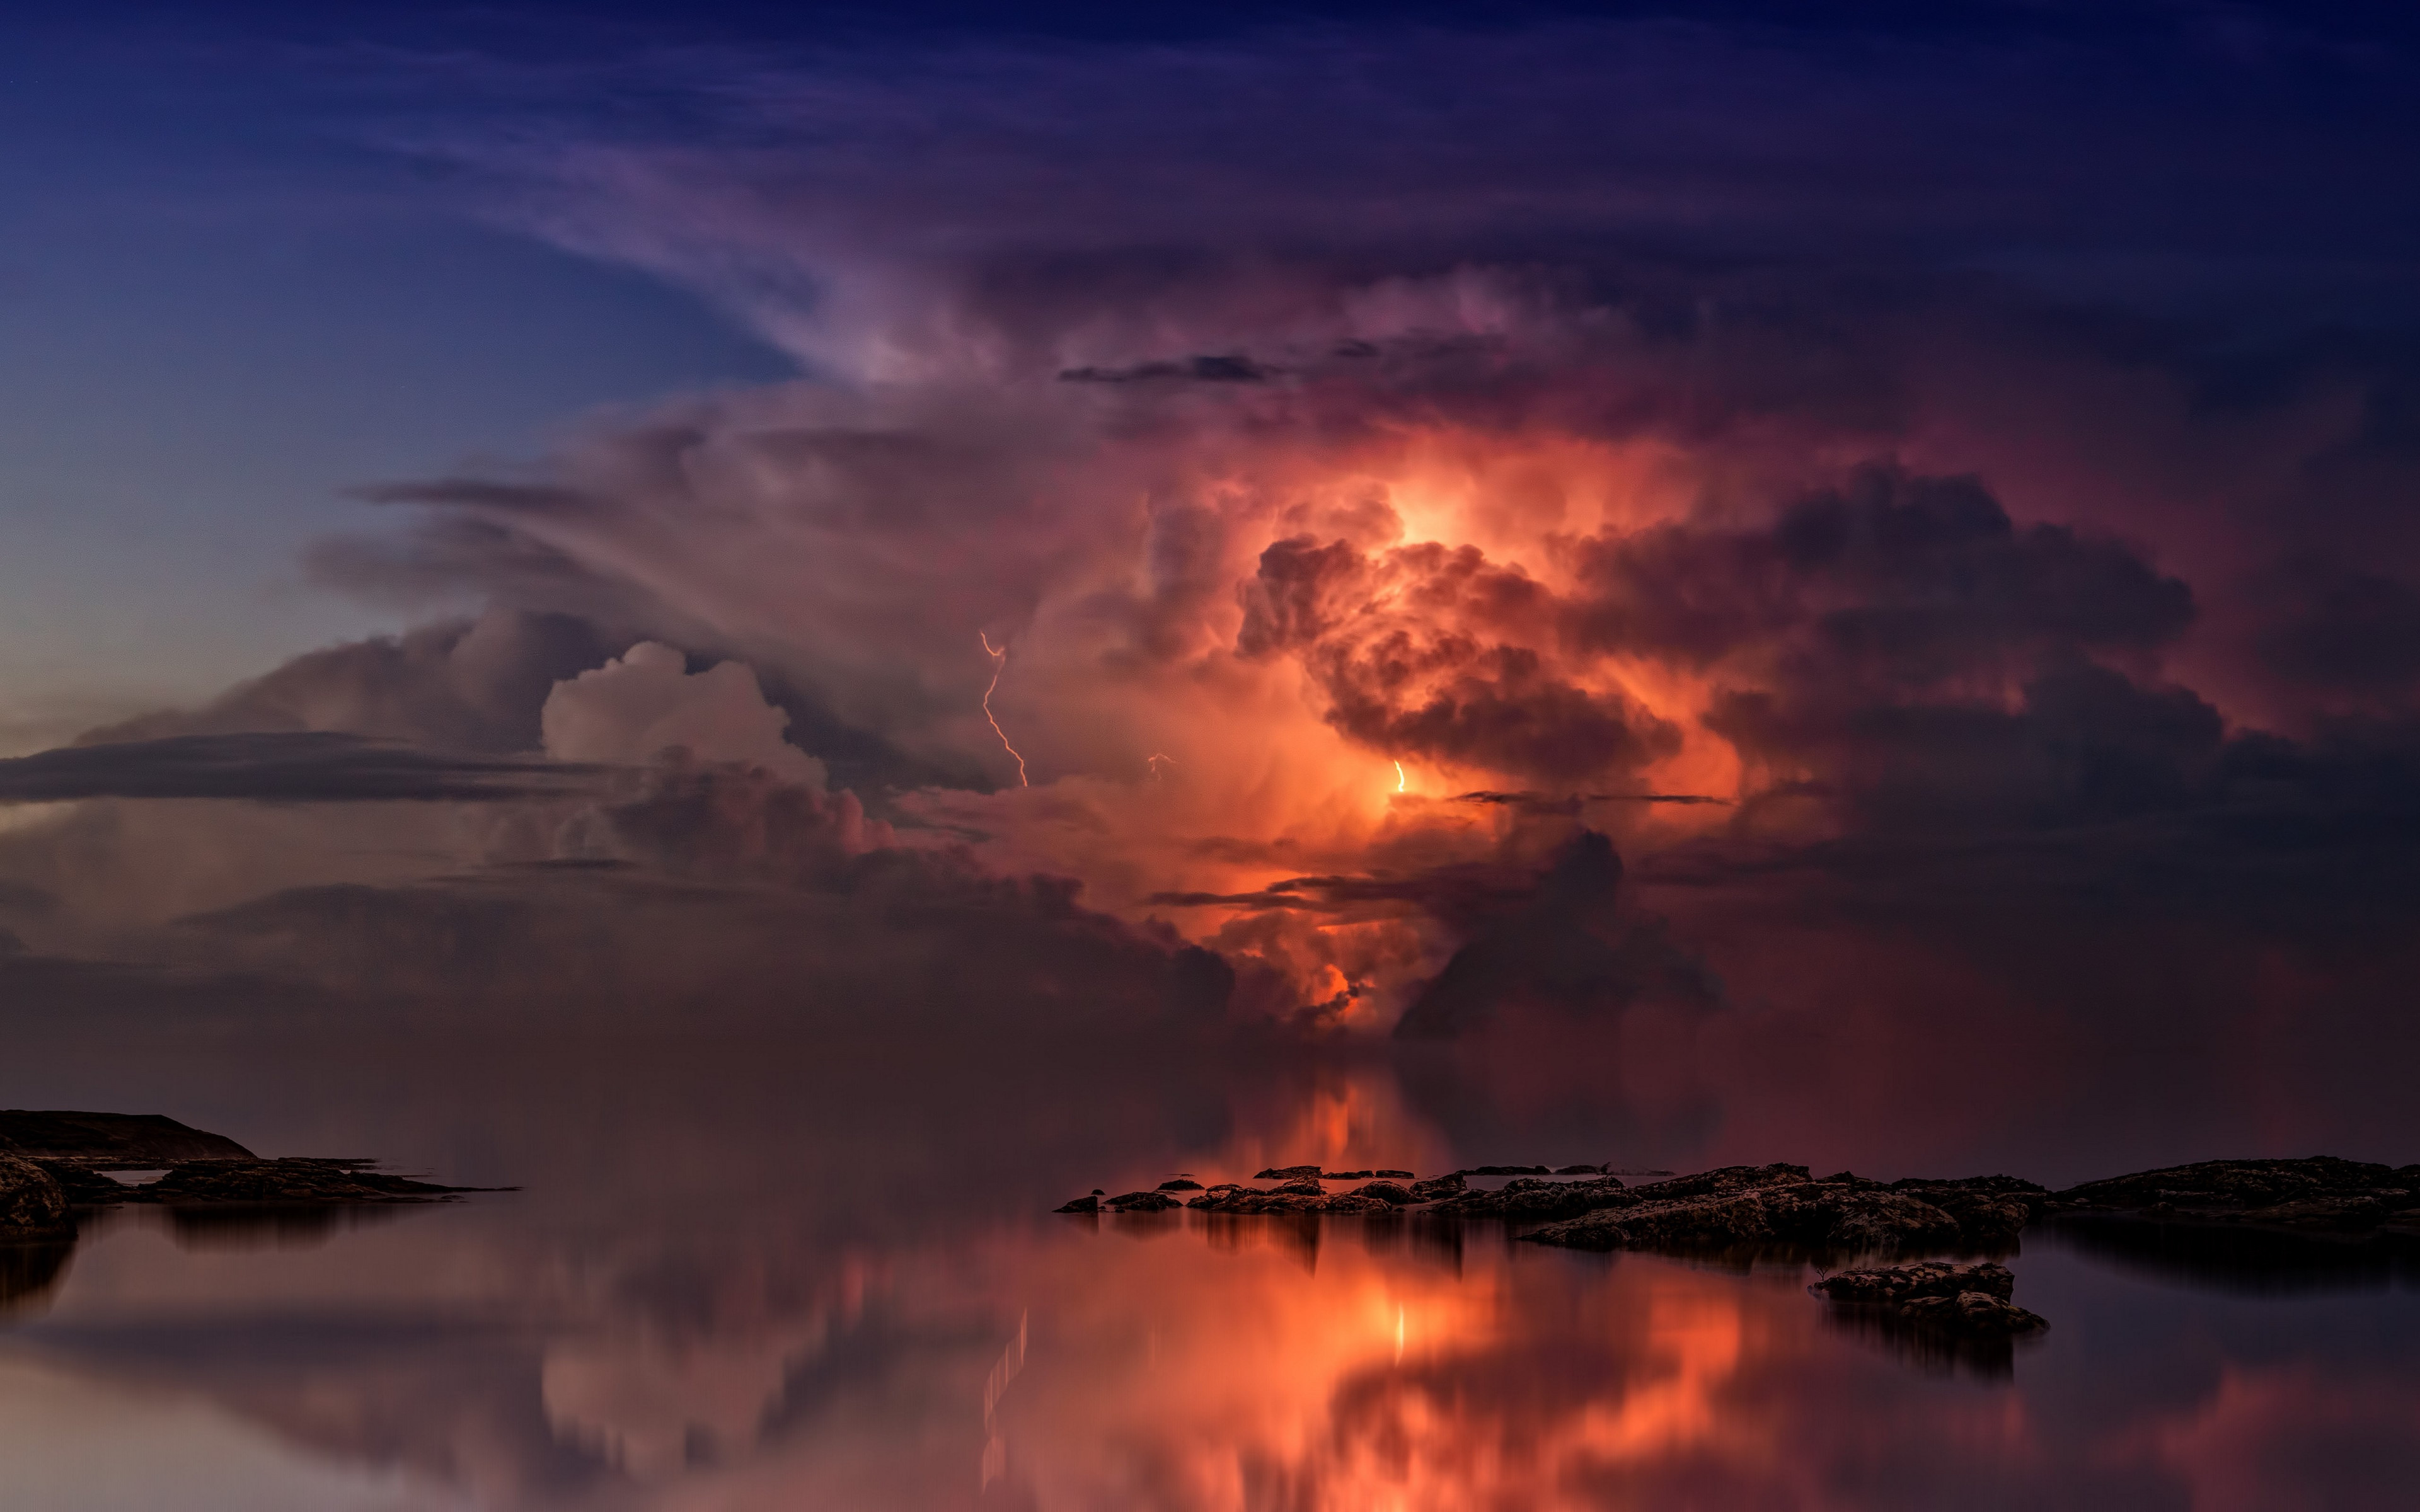 Lightning and thunderstorm in the sky wallpaper 3840x2400